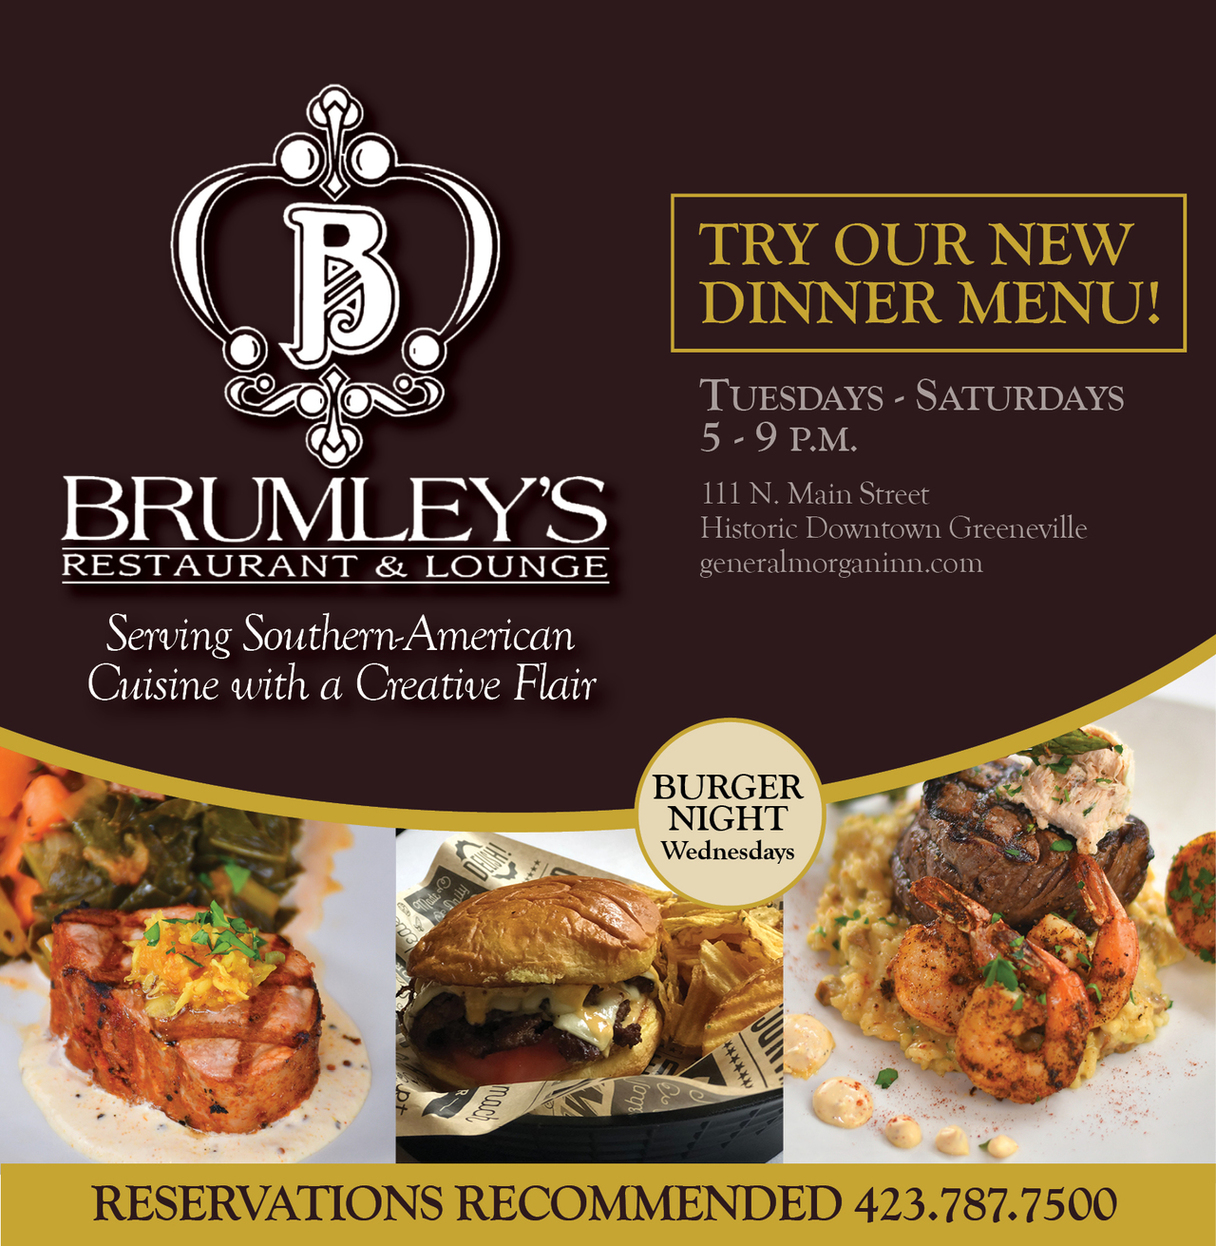 Try our new dinner menu!